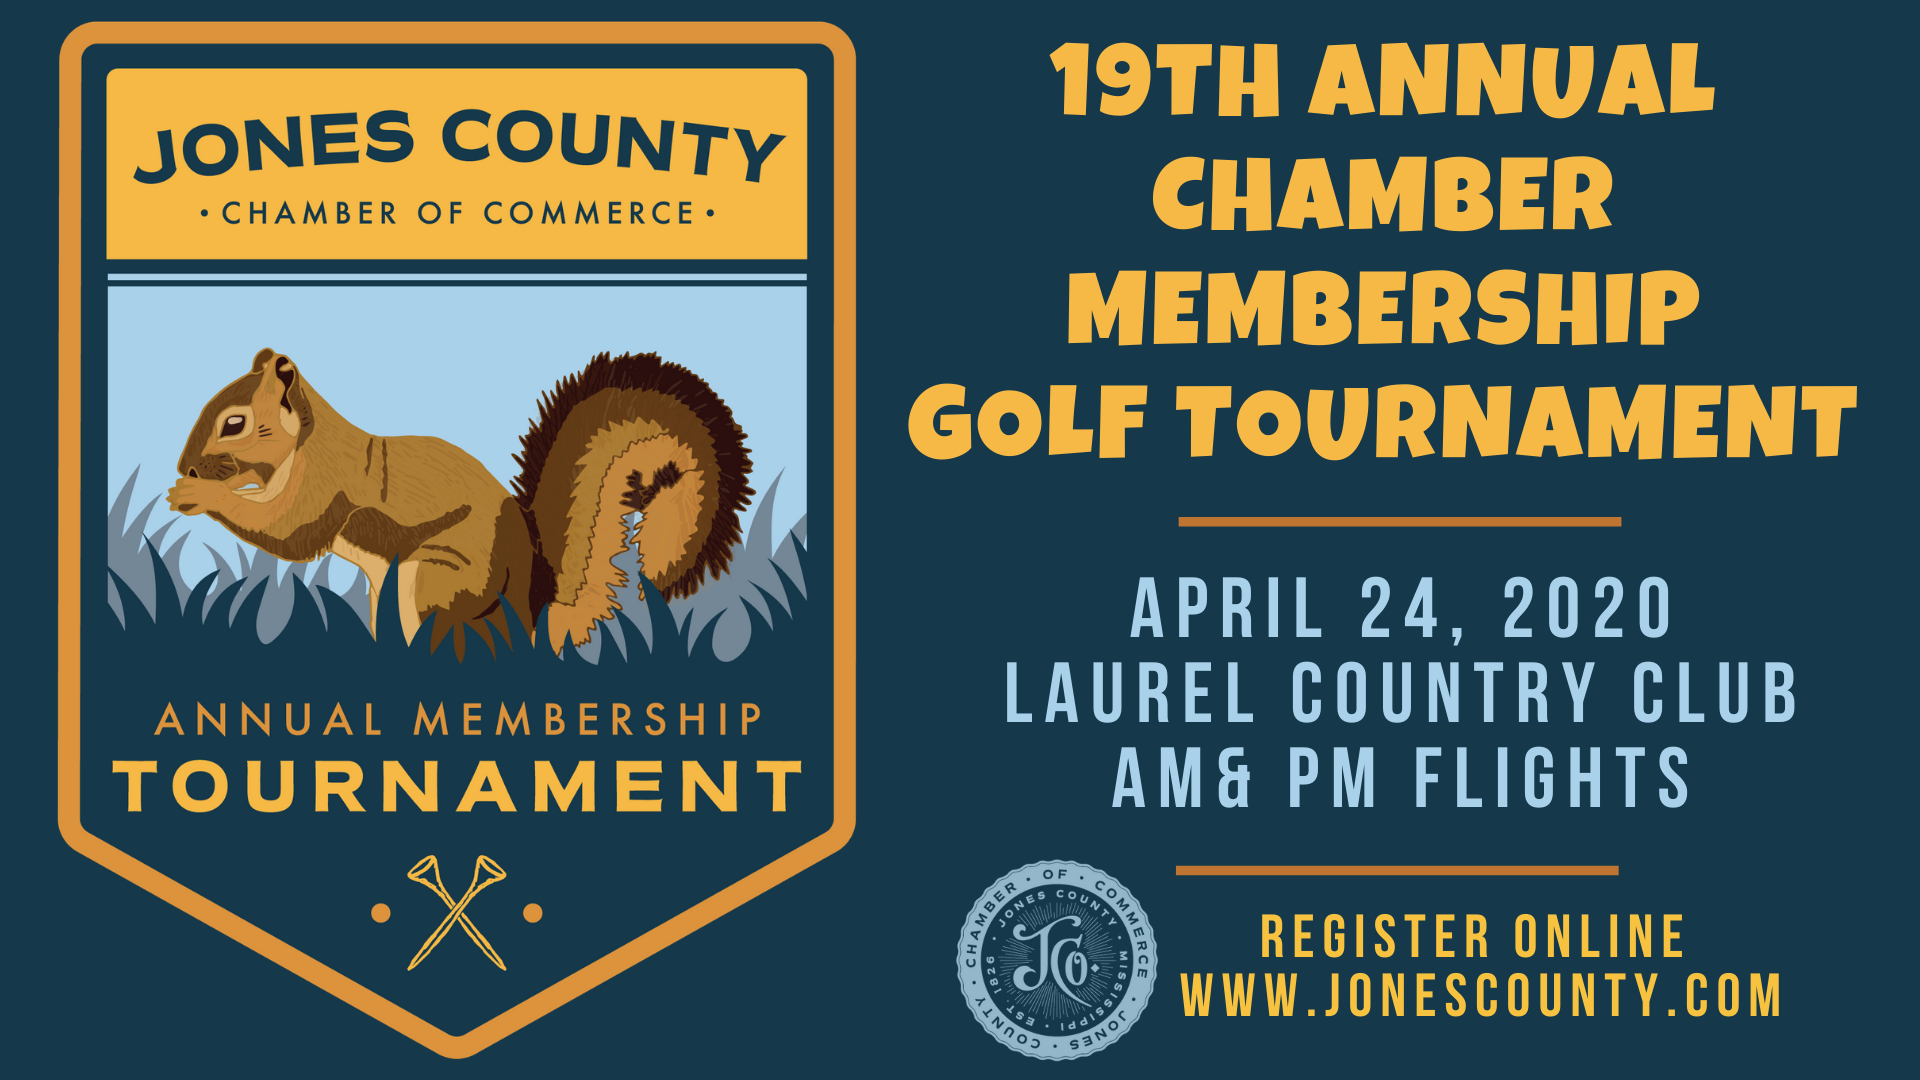 The City of Laurel, 19th Annual Chamber Golf Tournament